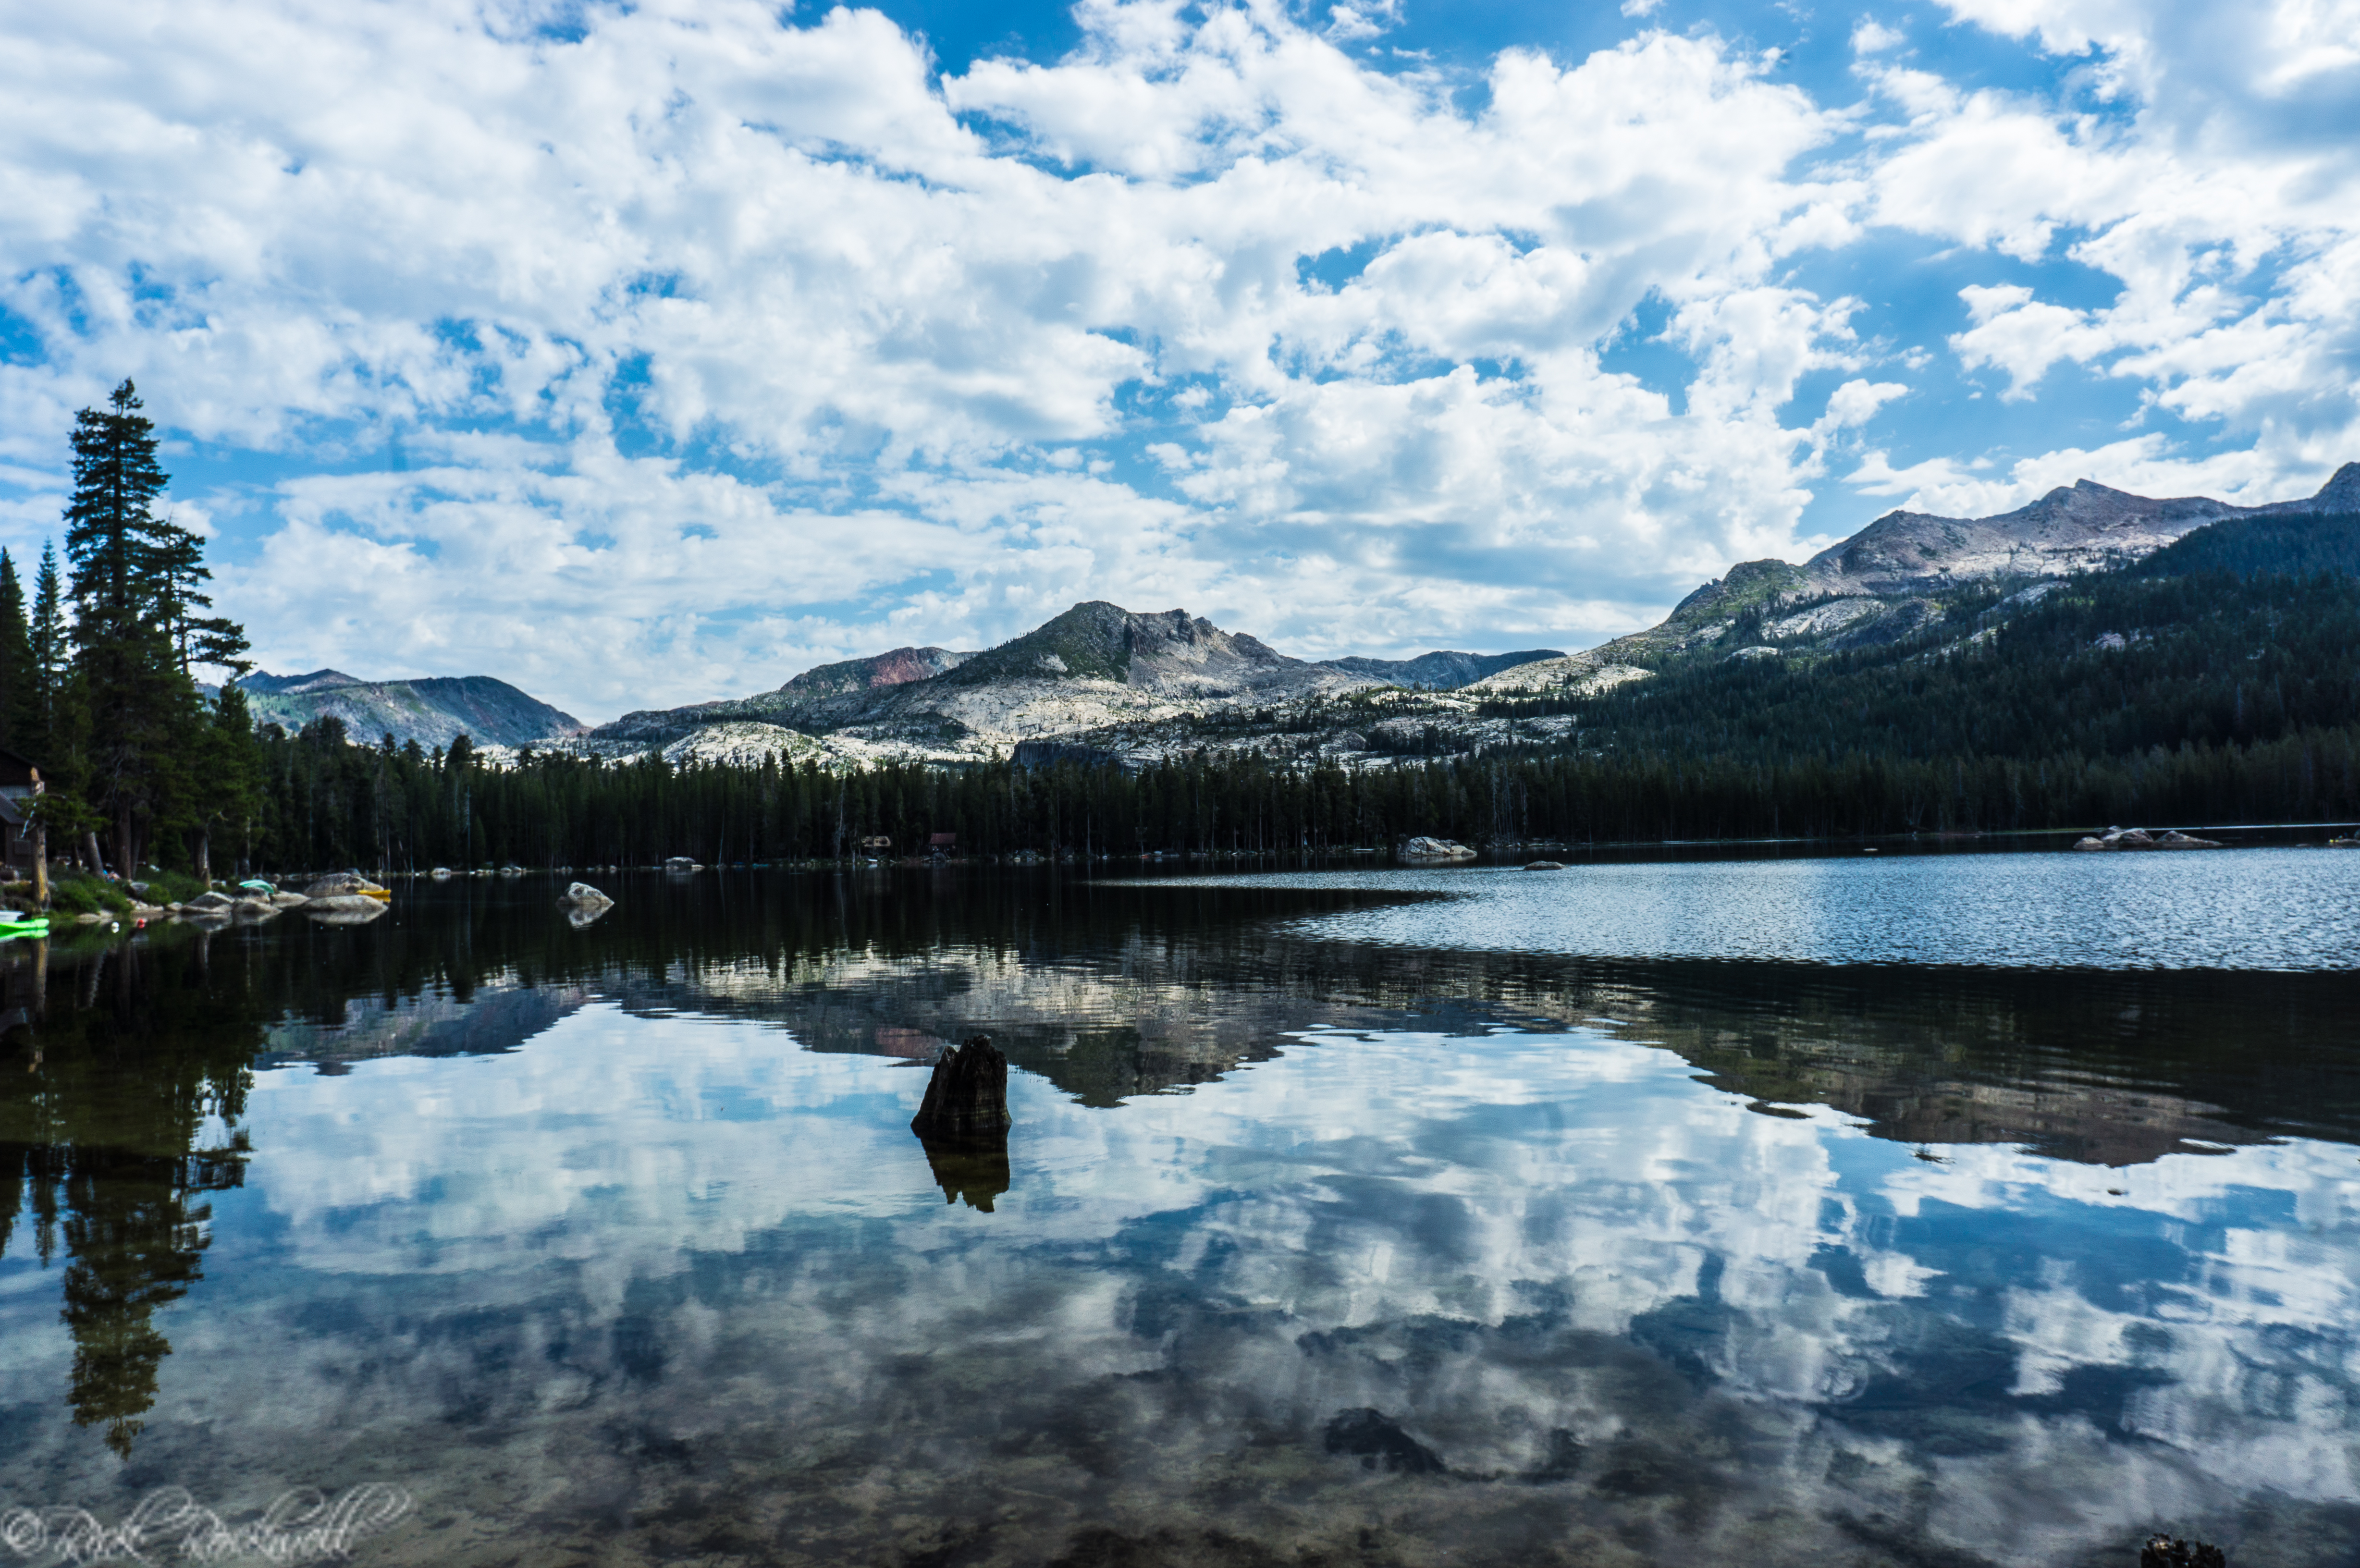 Wrights Lake is the right choice for hiking, kayaking, camping and scenery